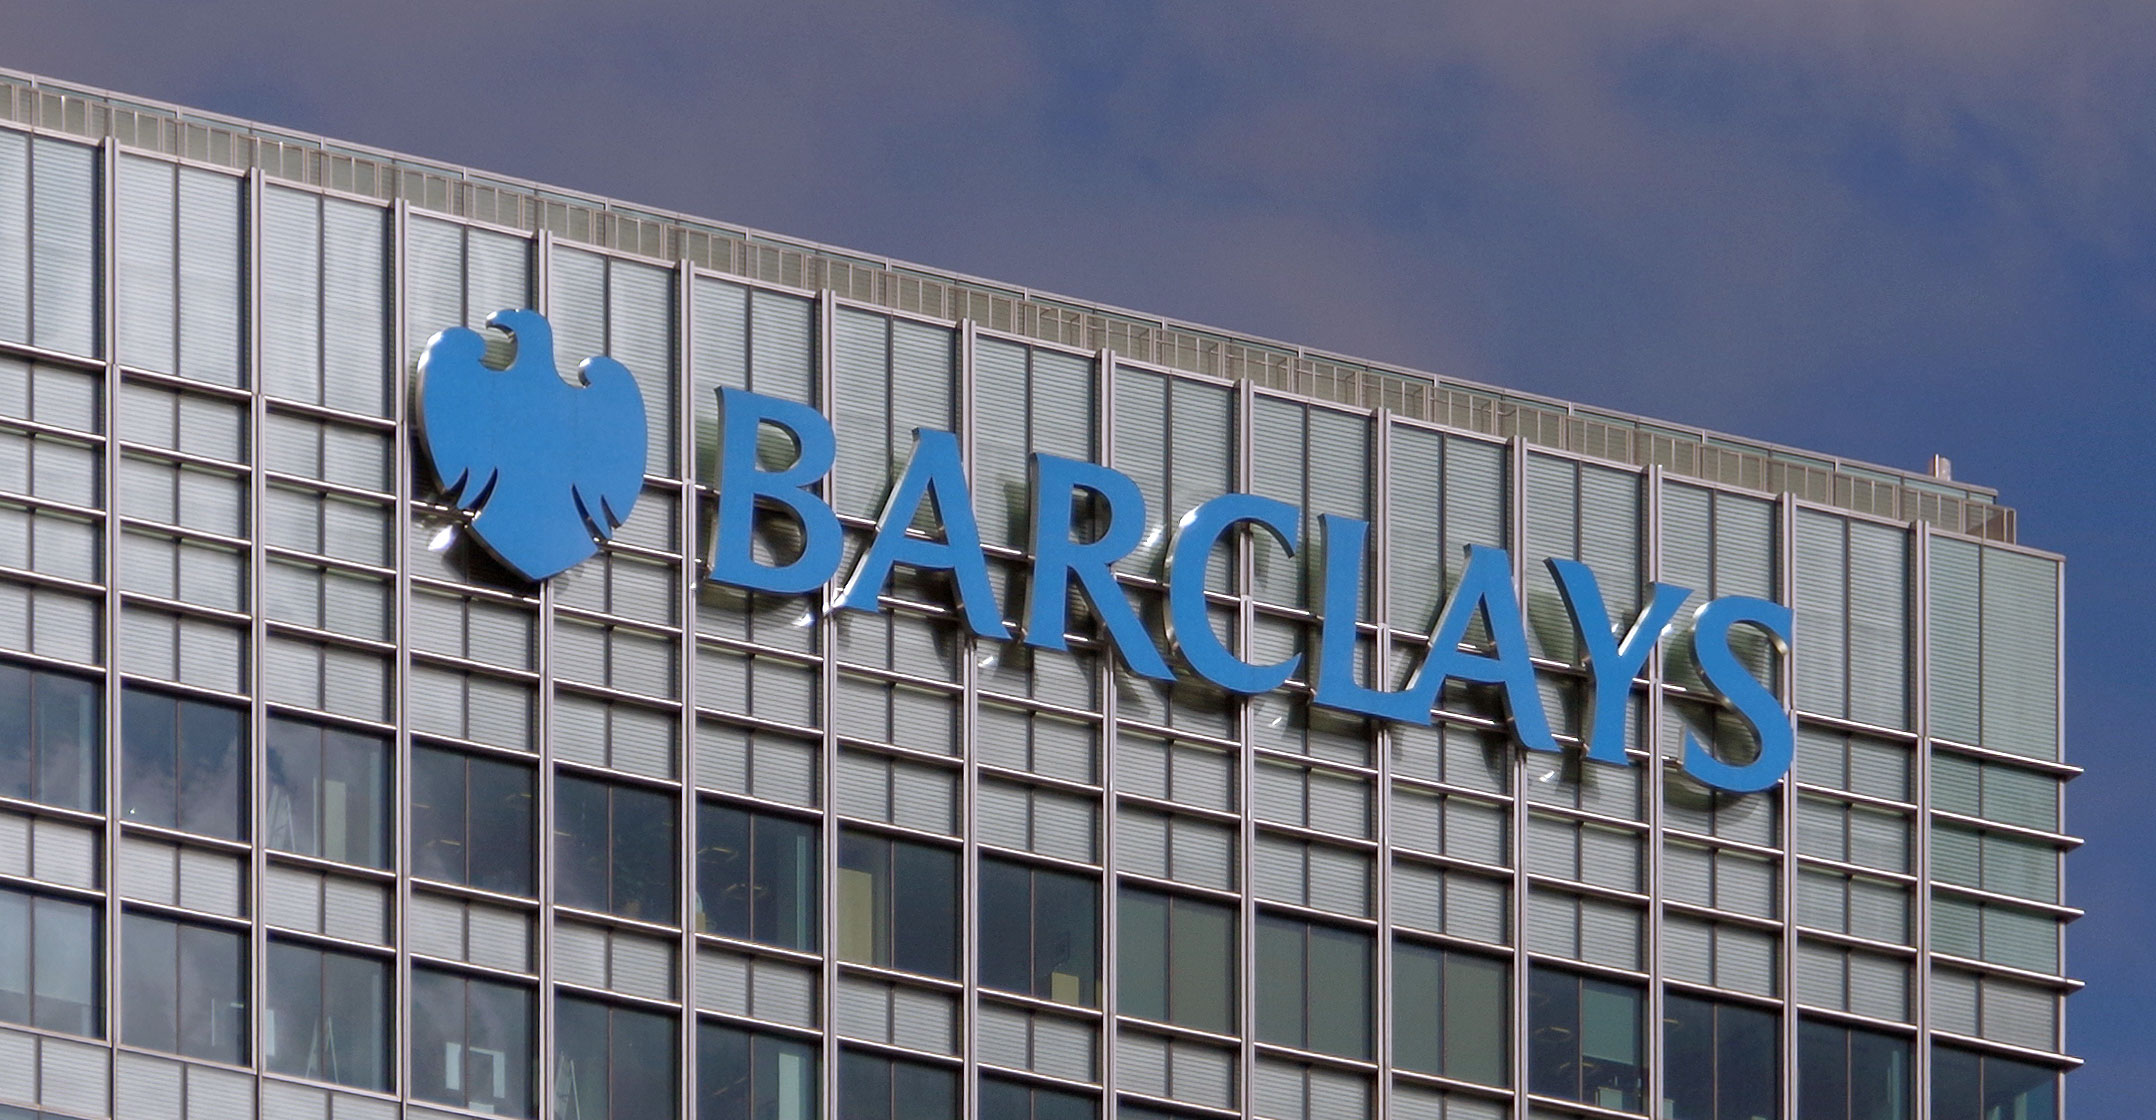 Barclays Ceo Sees Tech Rivals Security As Biggest Threats